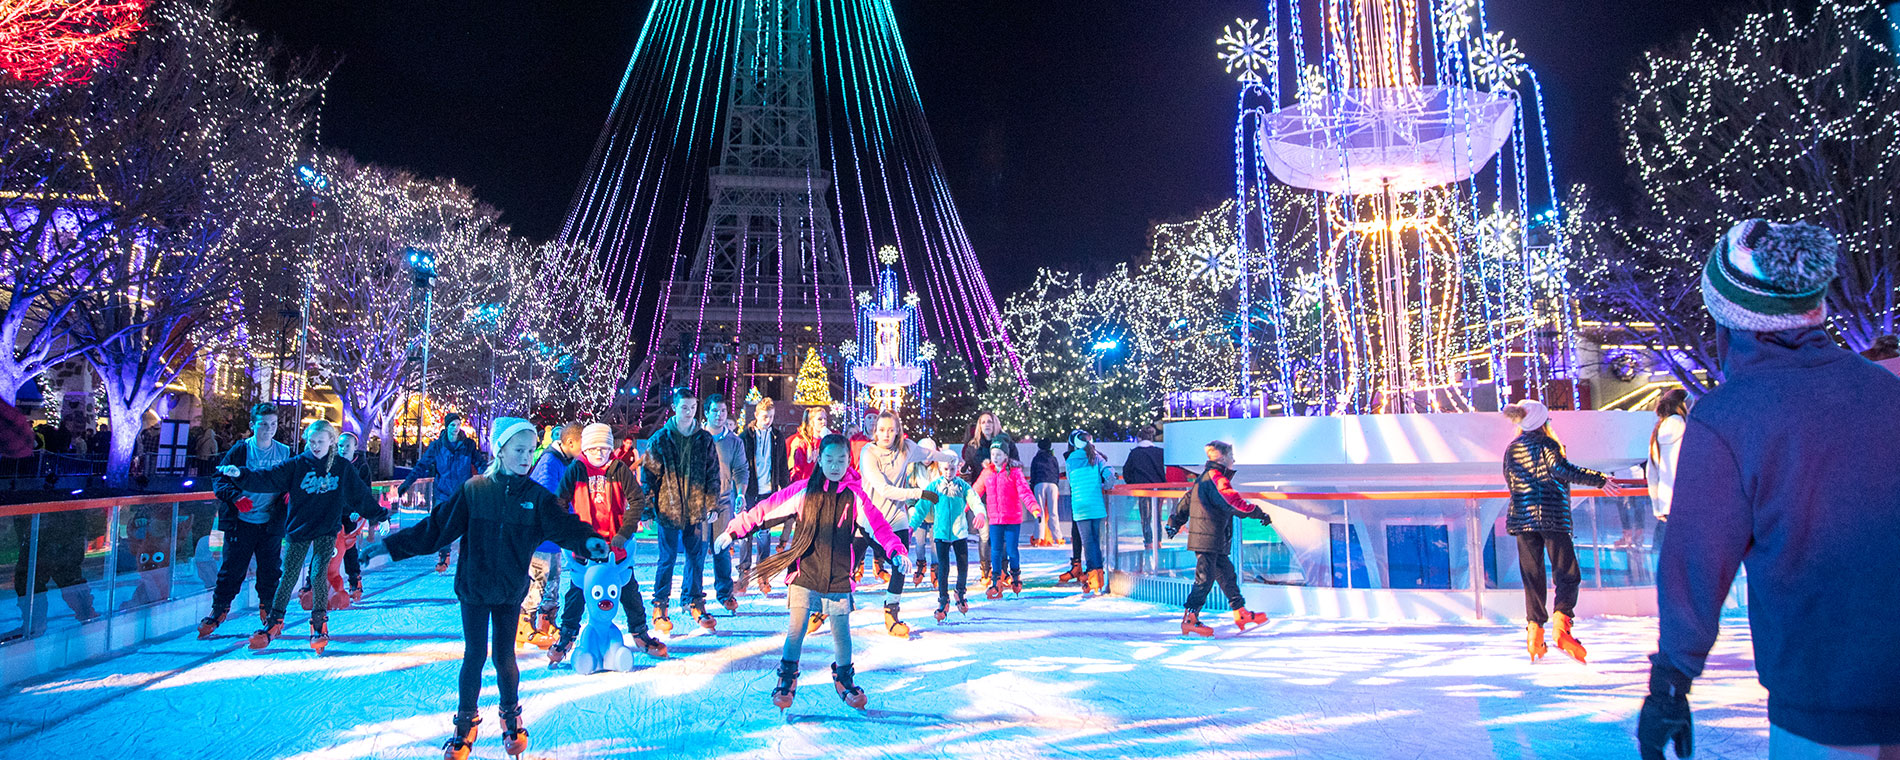 Snow Flake Ice Skating at Kings Island's Holiday Event